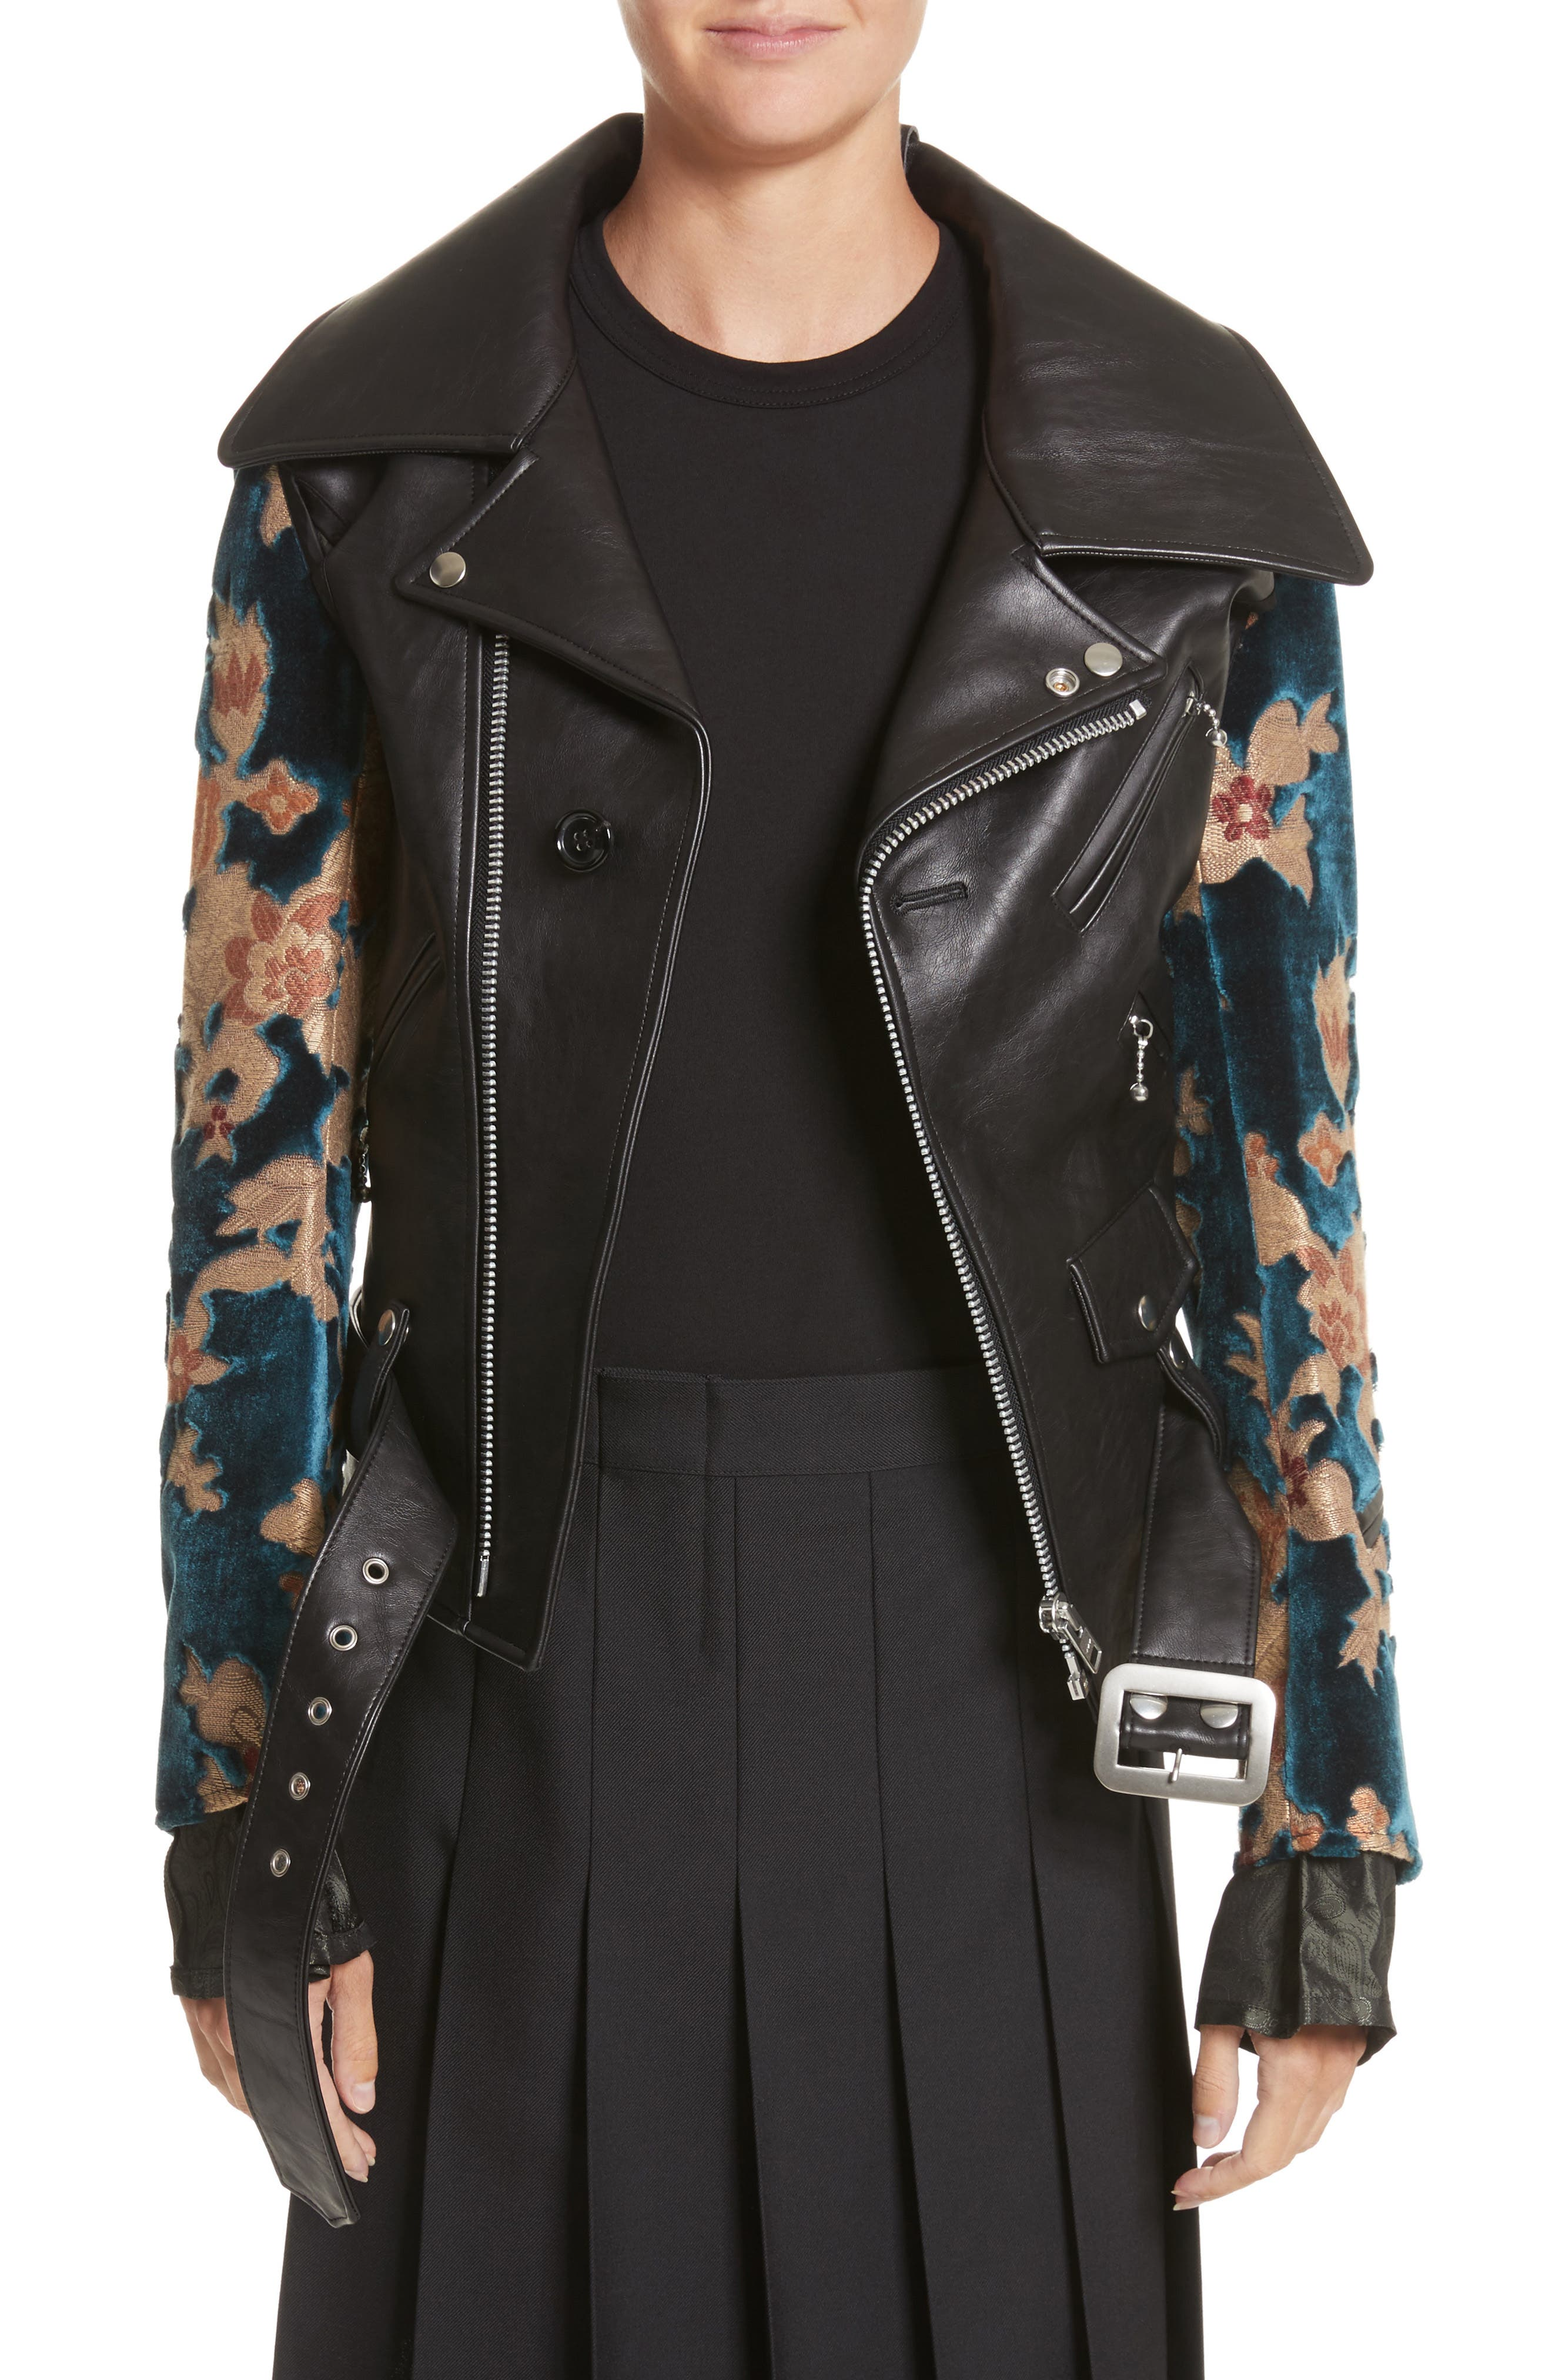 Alternate Image 1 Selected - Junya Watanabe Faux Leather Moto Jacket with Floral Sleeves